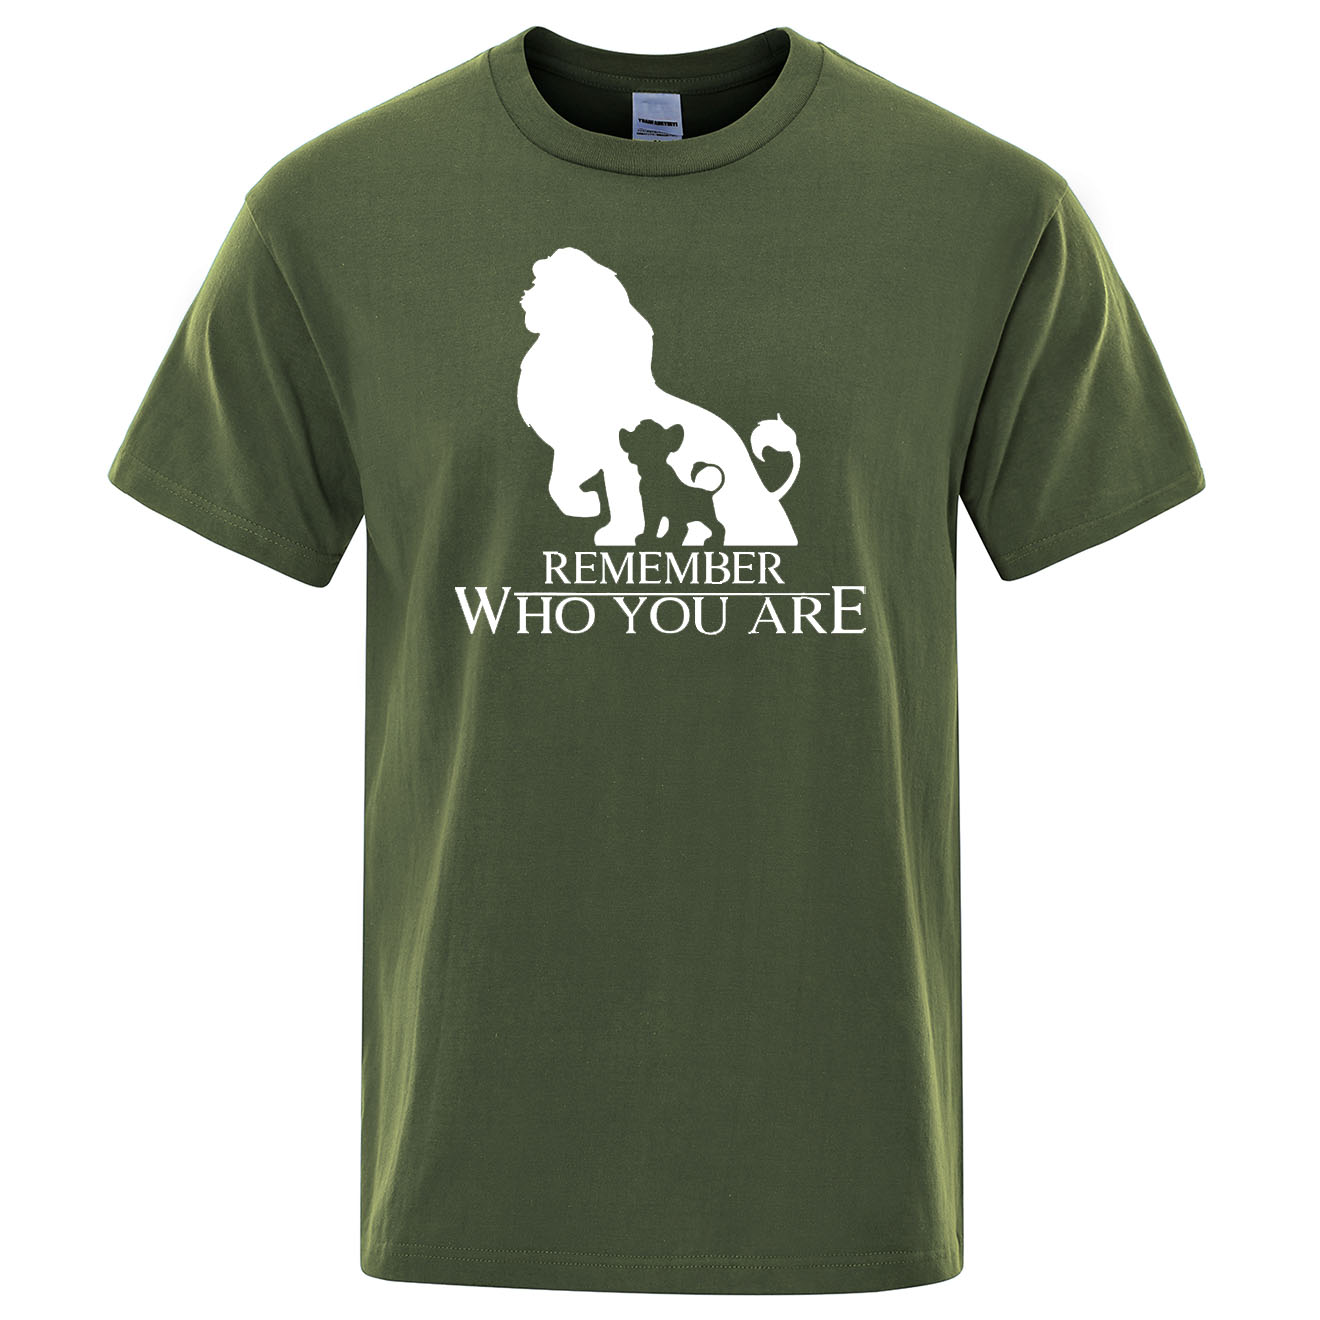 The Lion King Cartoon T Shirt Homme Streetwear Men's T-shirt  Remember Who You Are Letter Print Summer Short Sleeve Men T Shirts